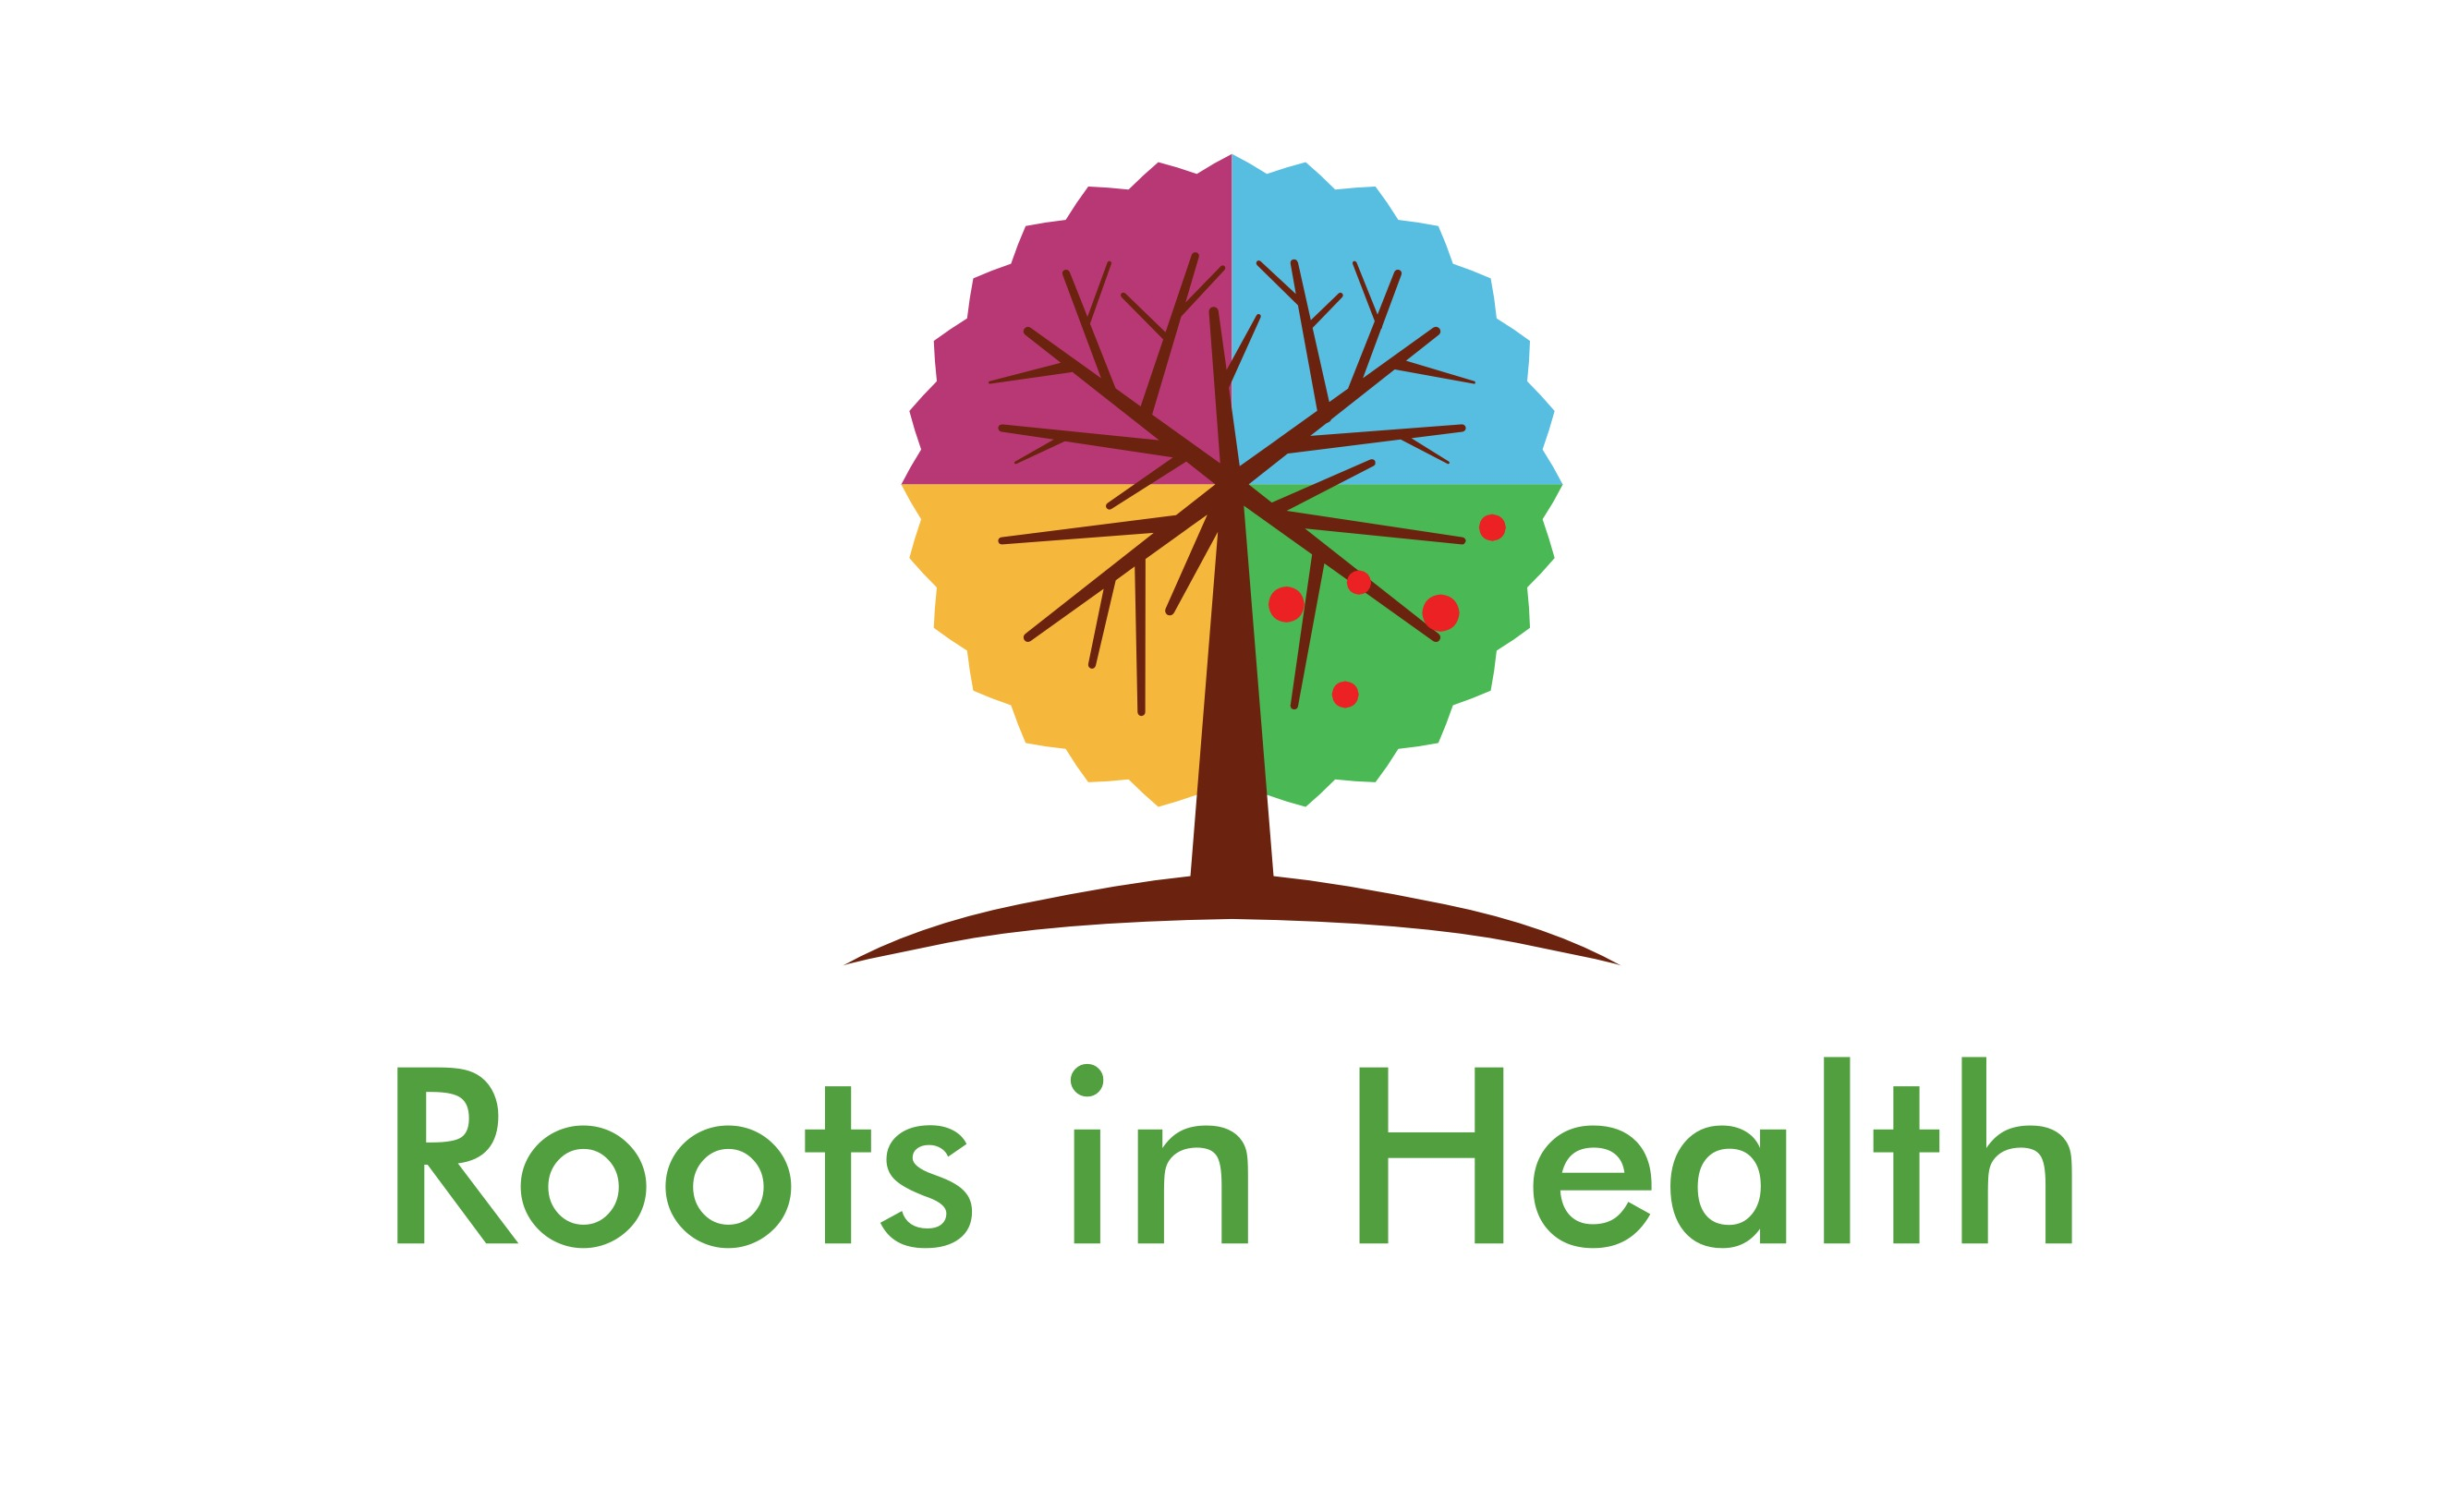 Roots in Health